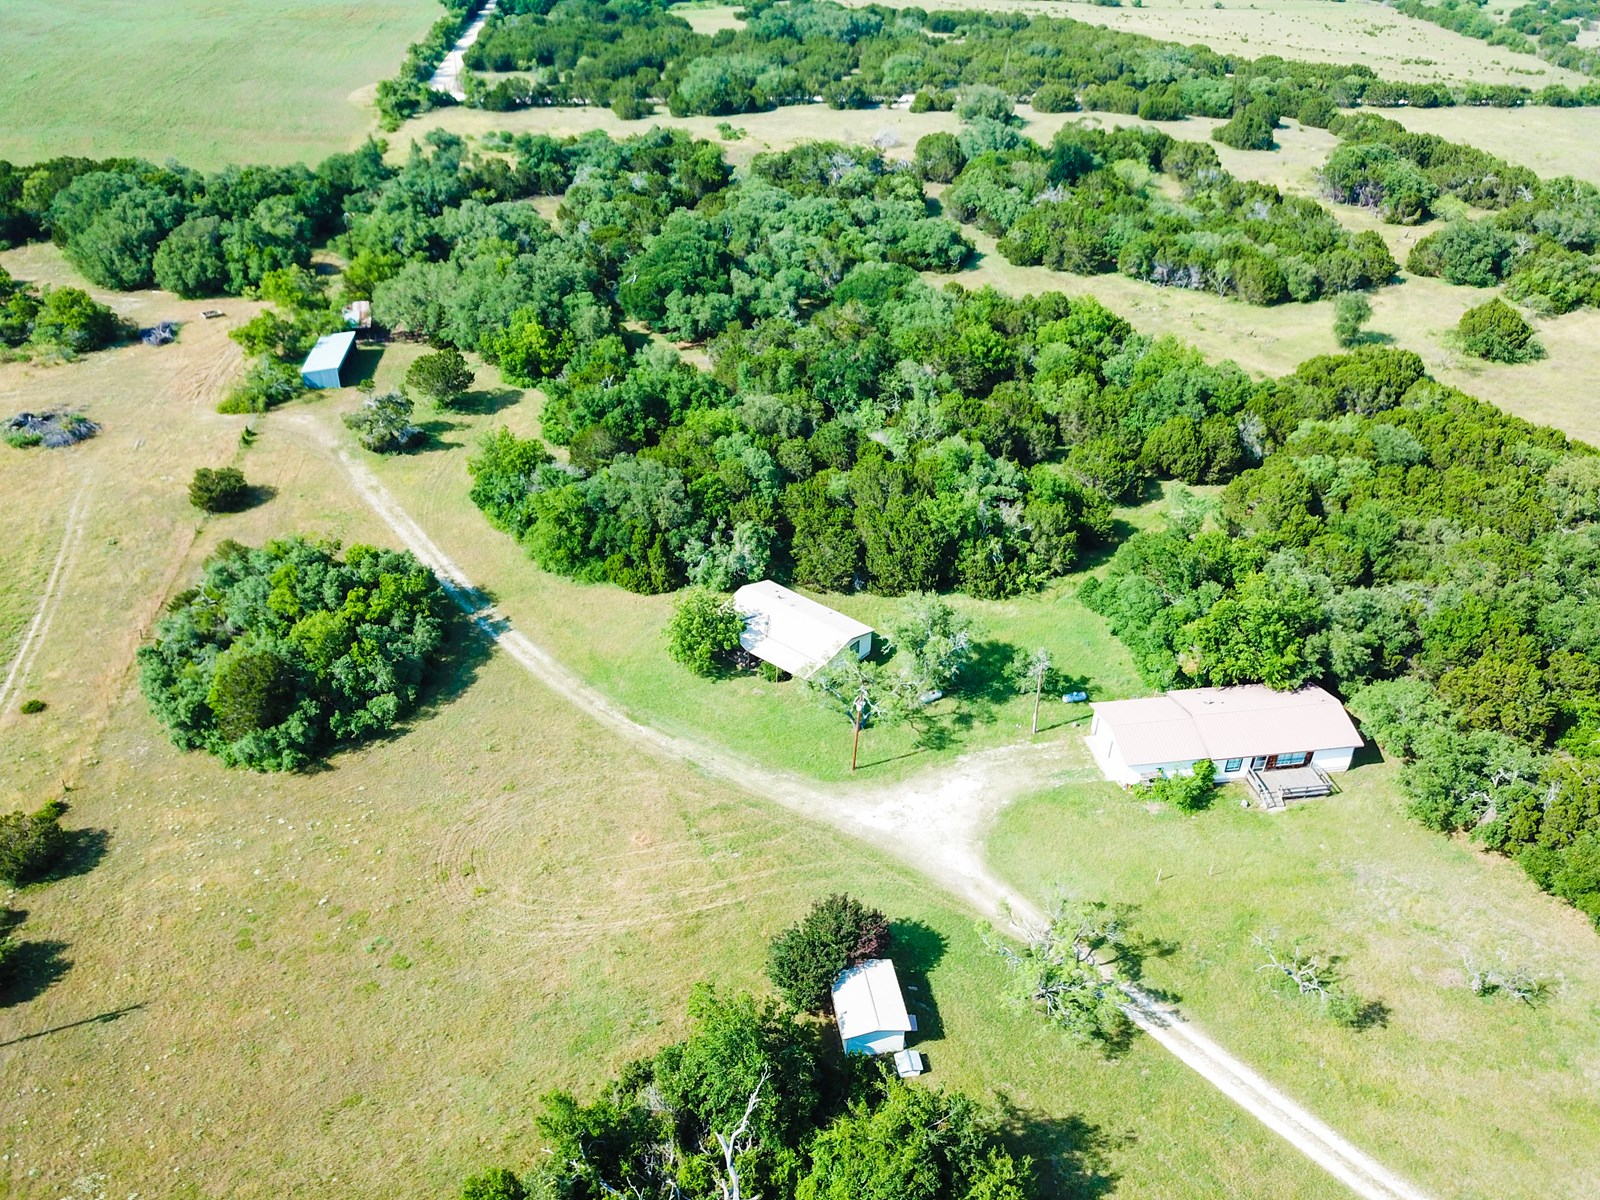 Land for Sale in Central Texas